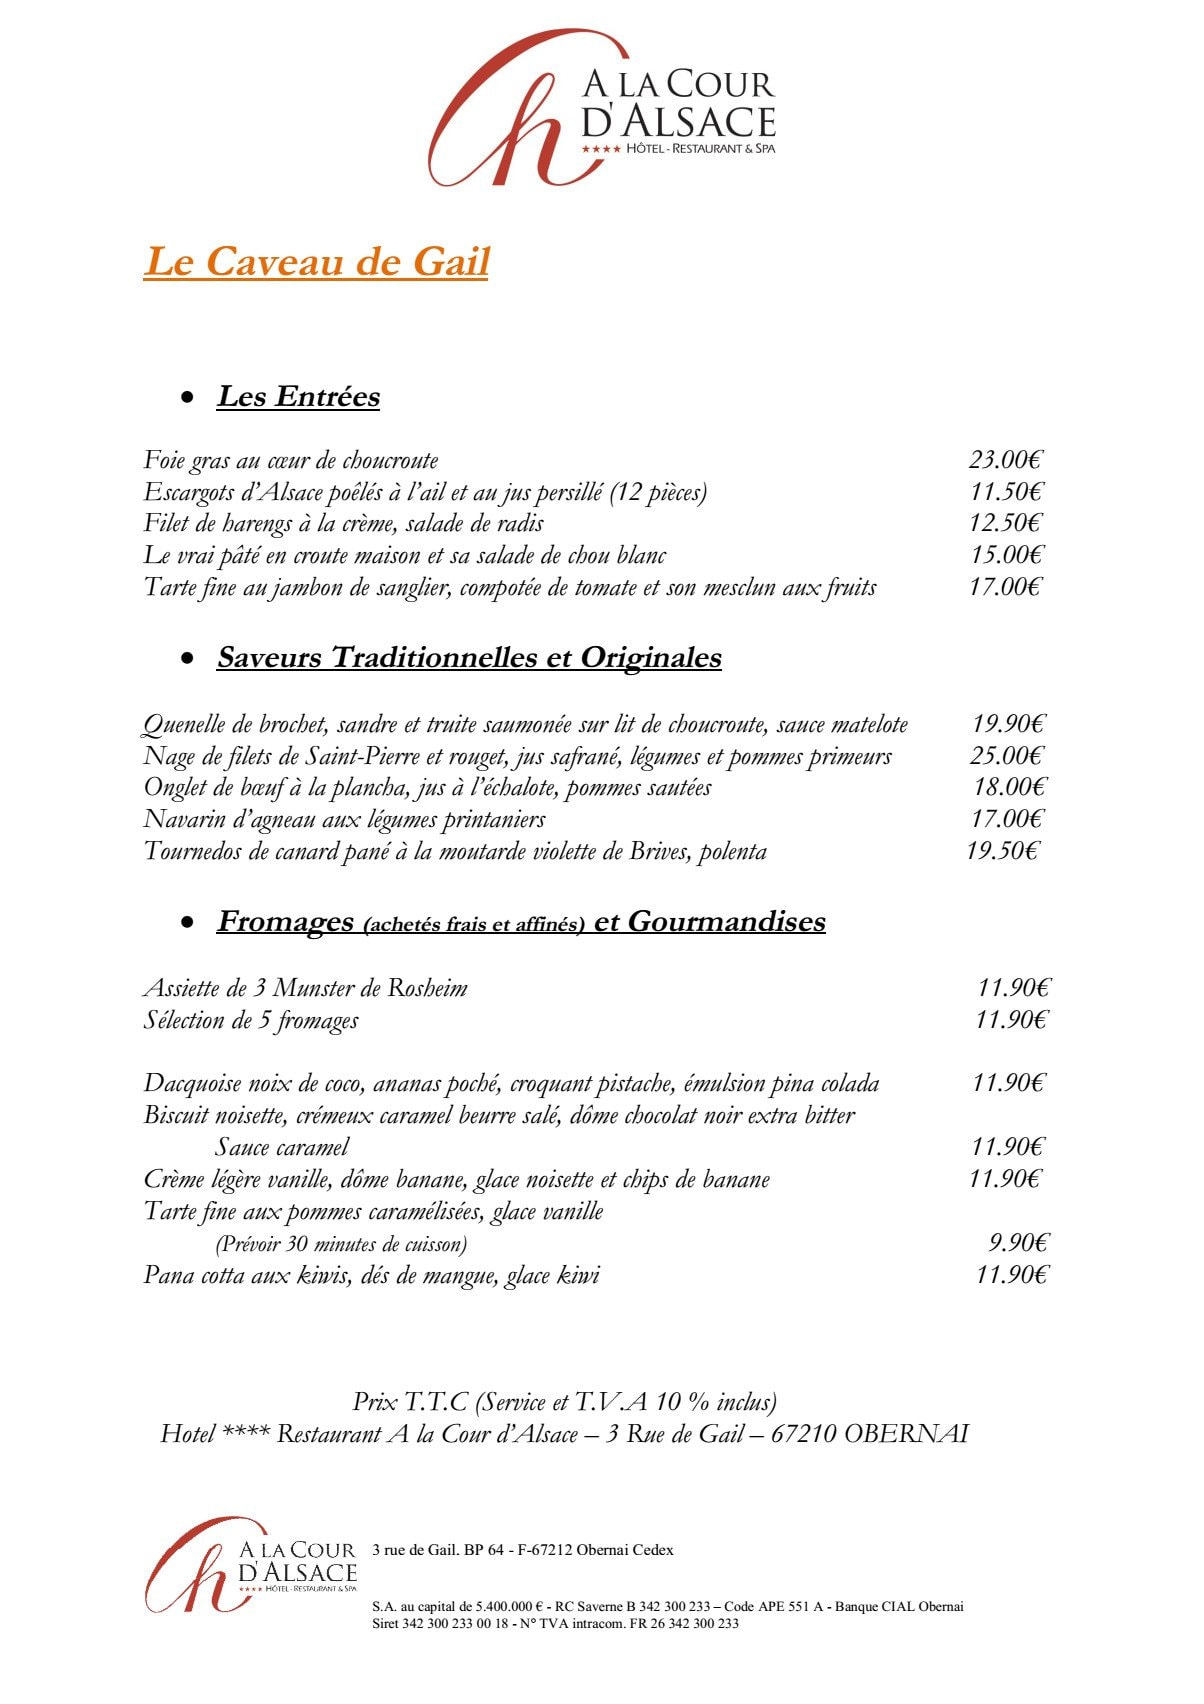 A la Cour d Alsace   Obernai carte menu et photos